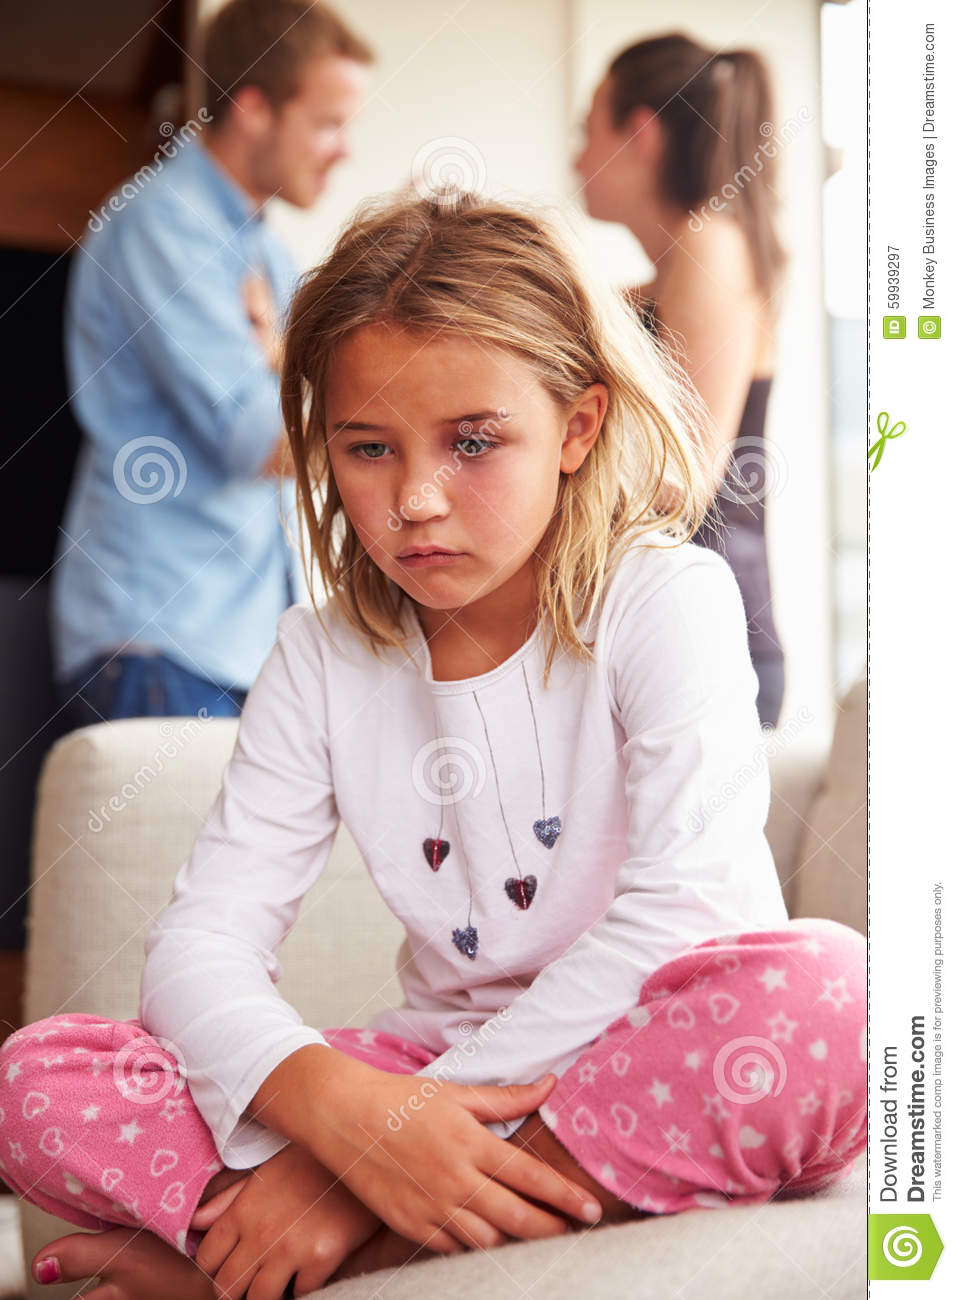 Unhappy Girl At Home With Parents Arguing In Background